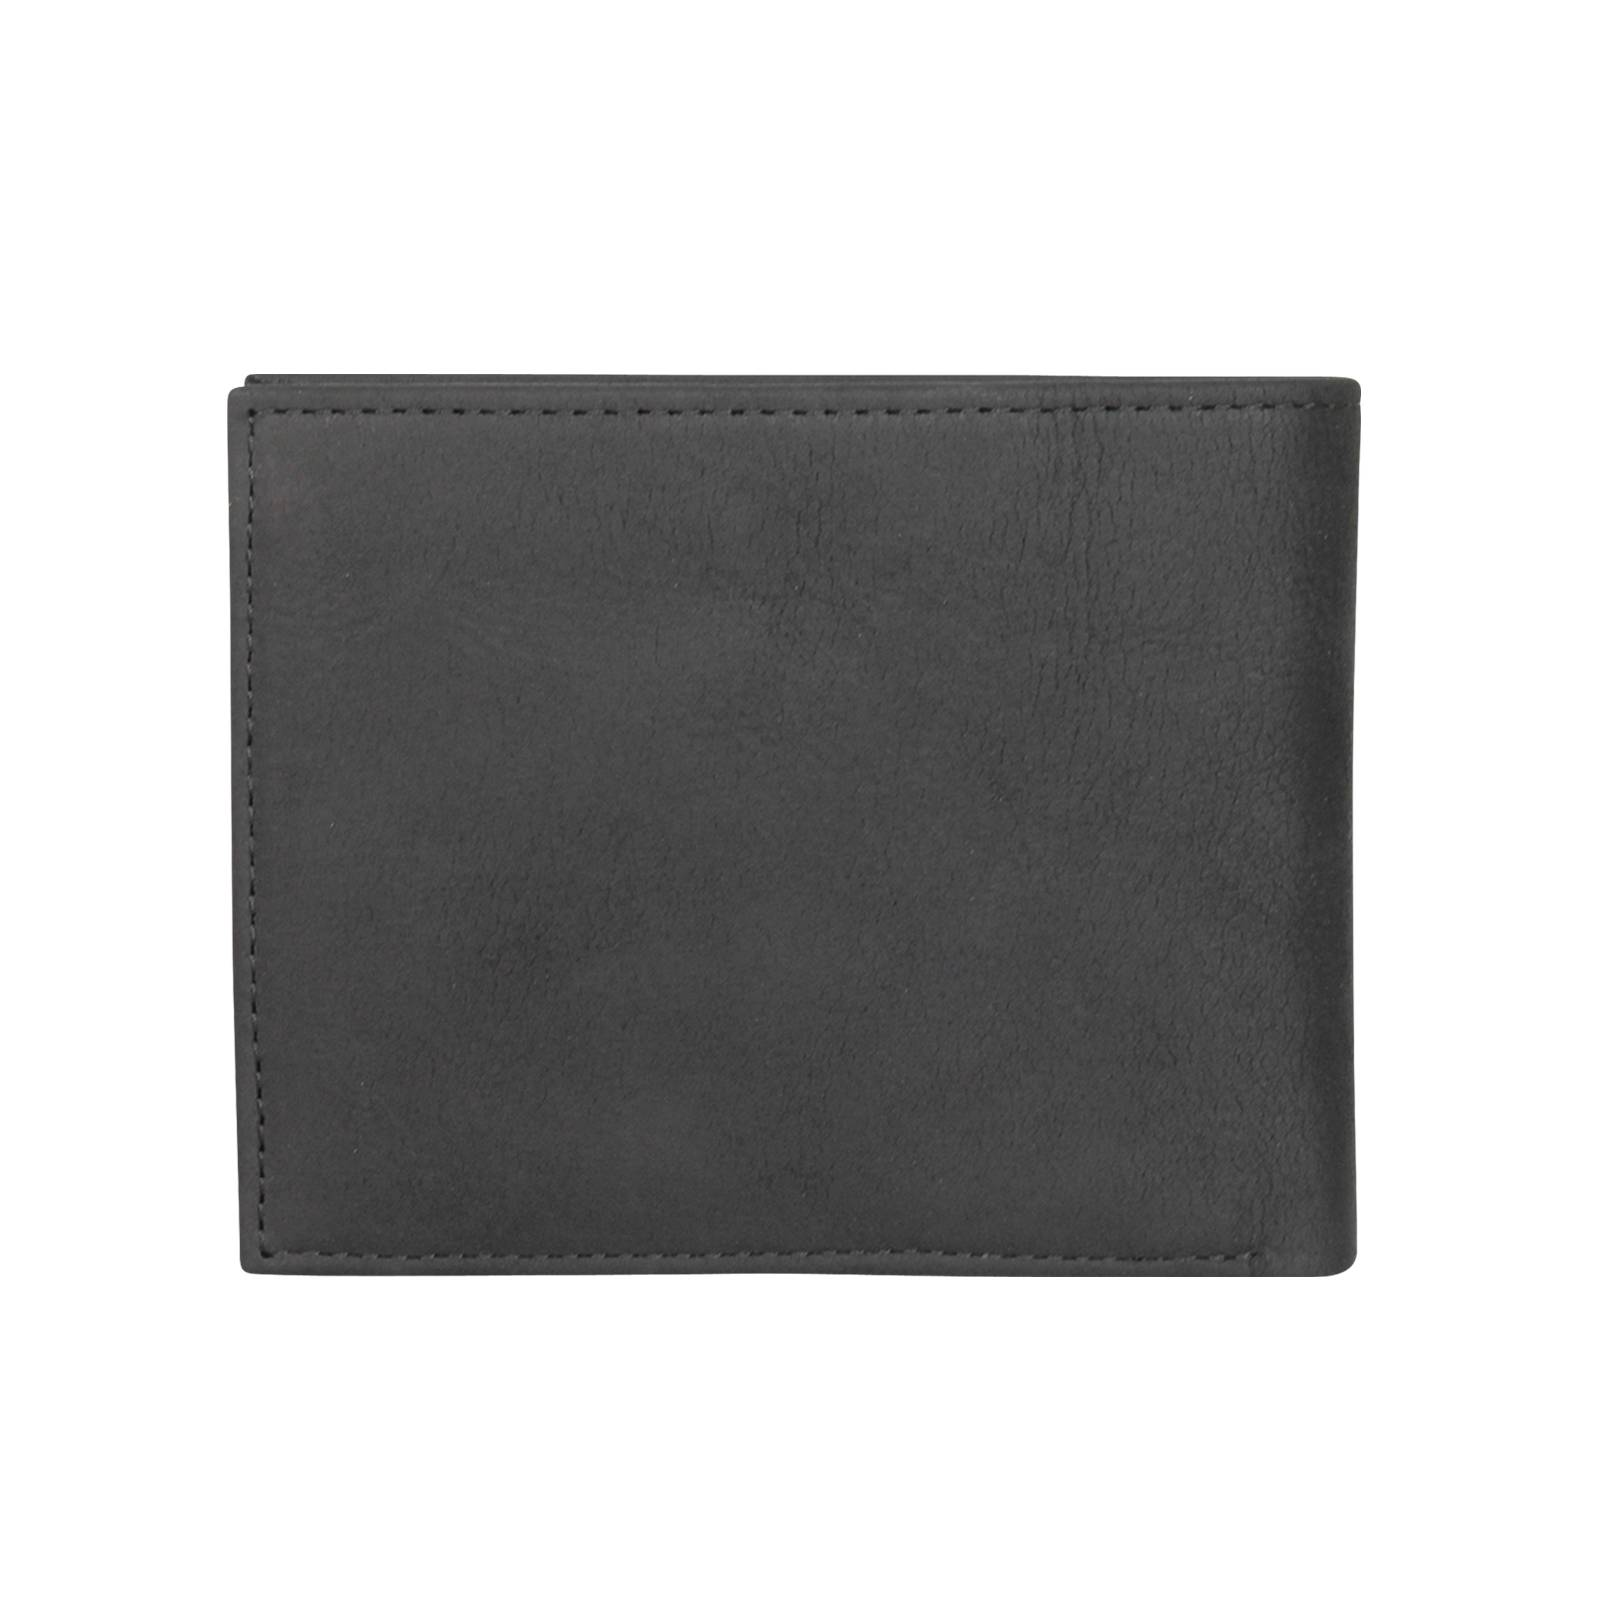 Noticias Móvil trompeta  Johnson CC & Coin Pocket - Tommy Hilfiger Men's Wallet made of leather -  Gianna Kazakou Online